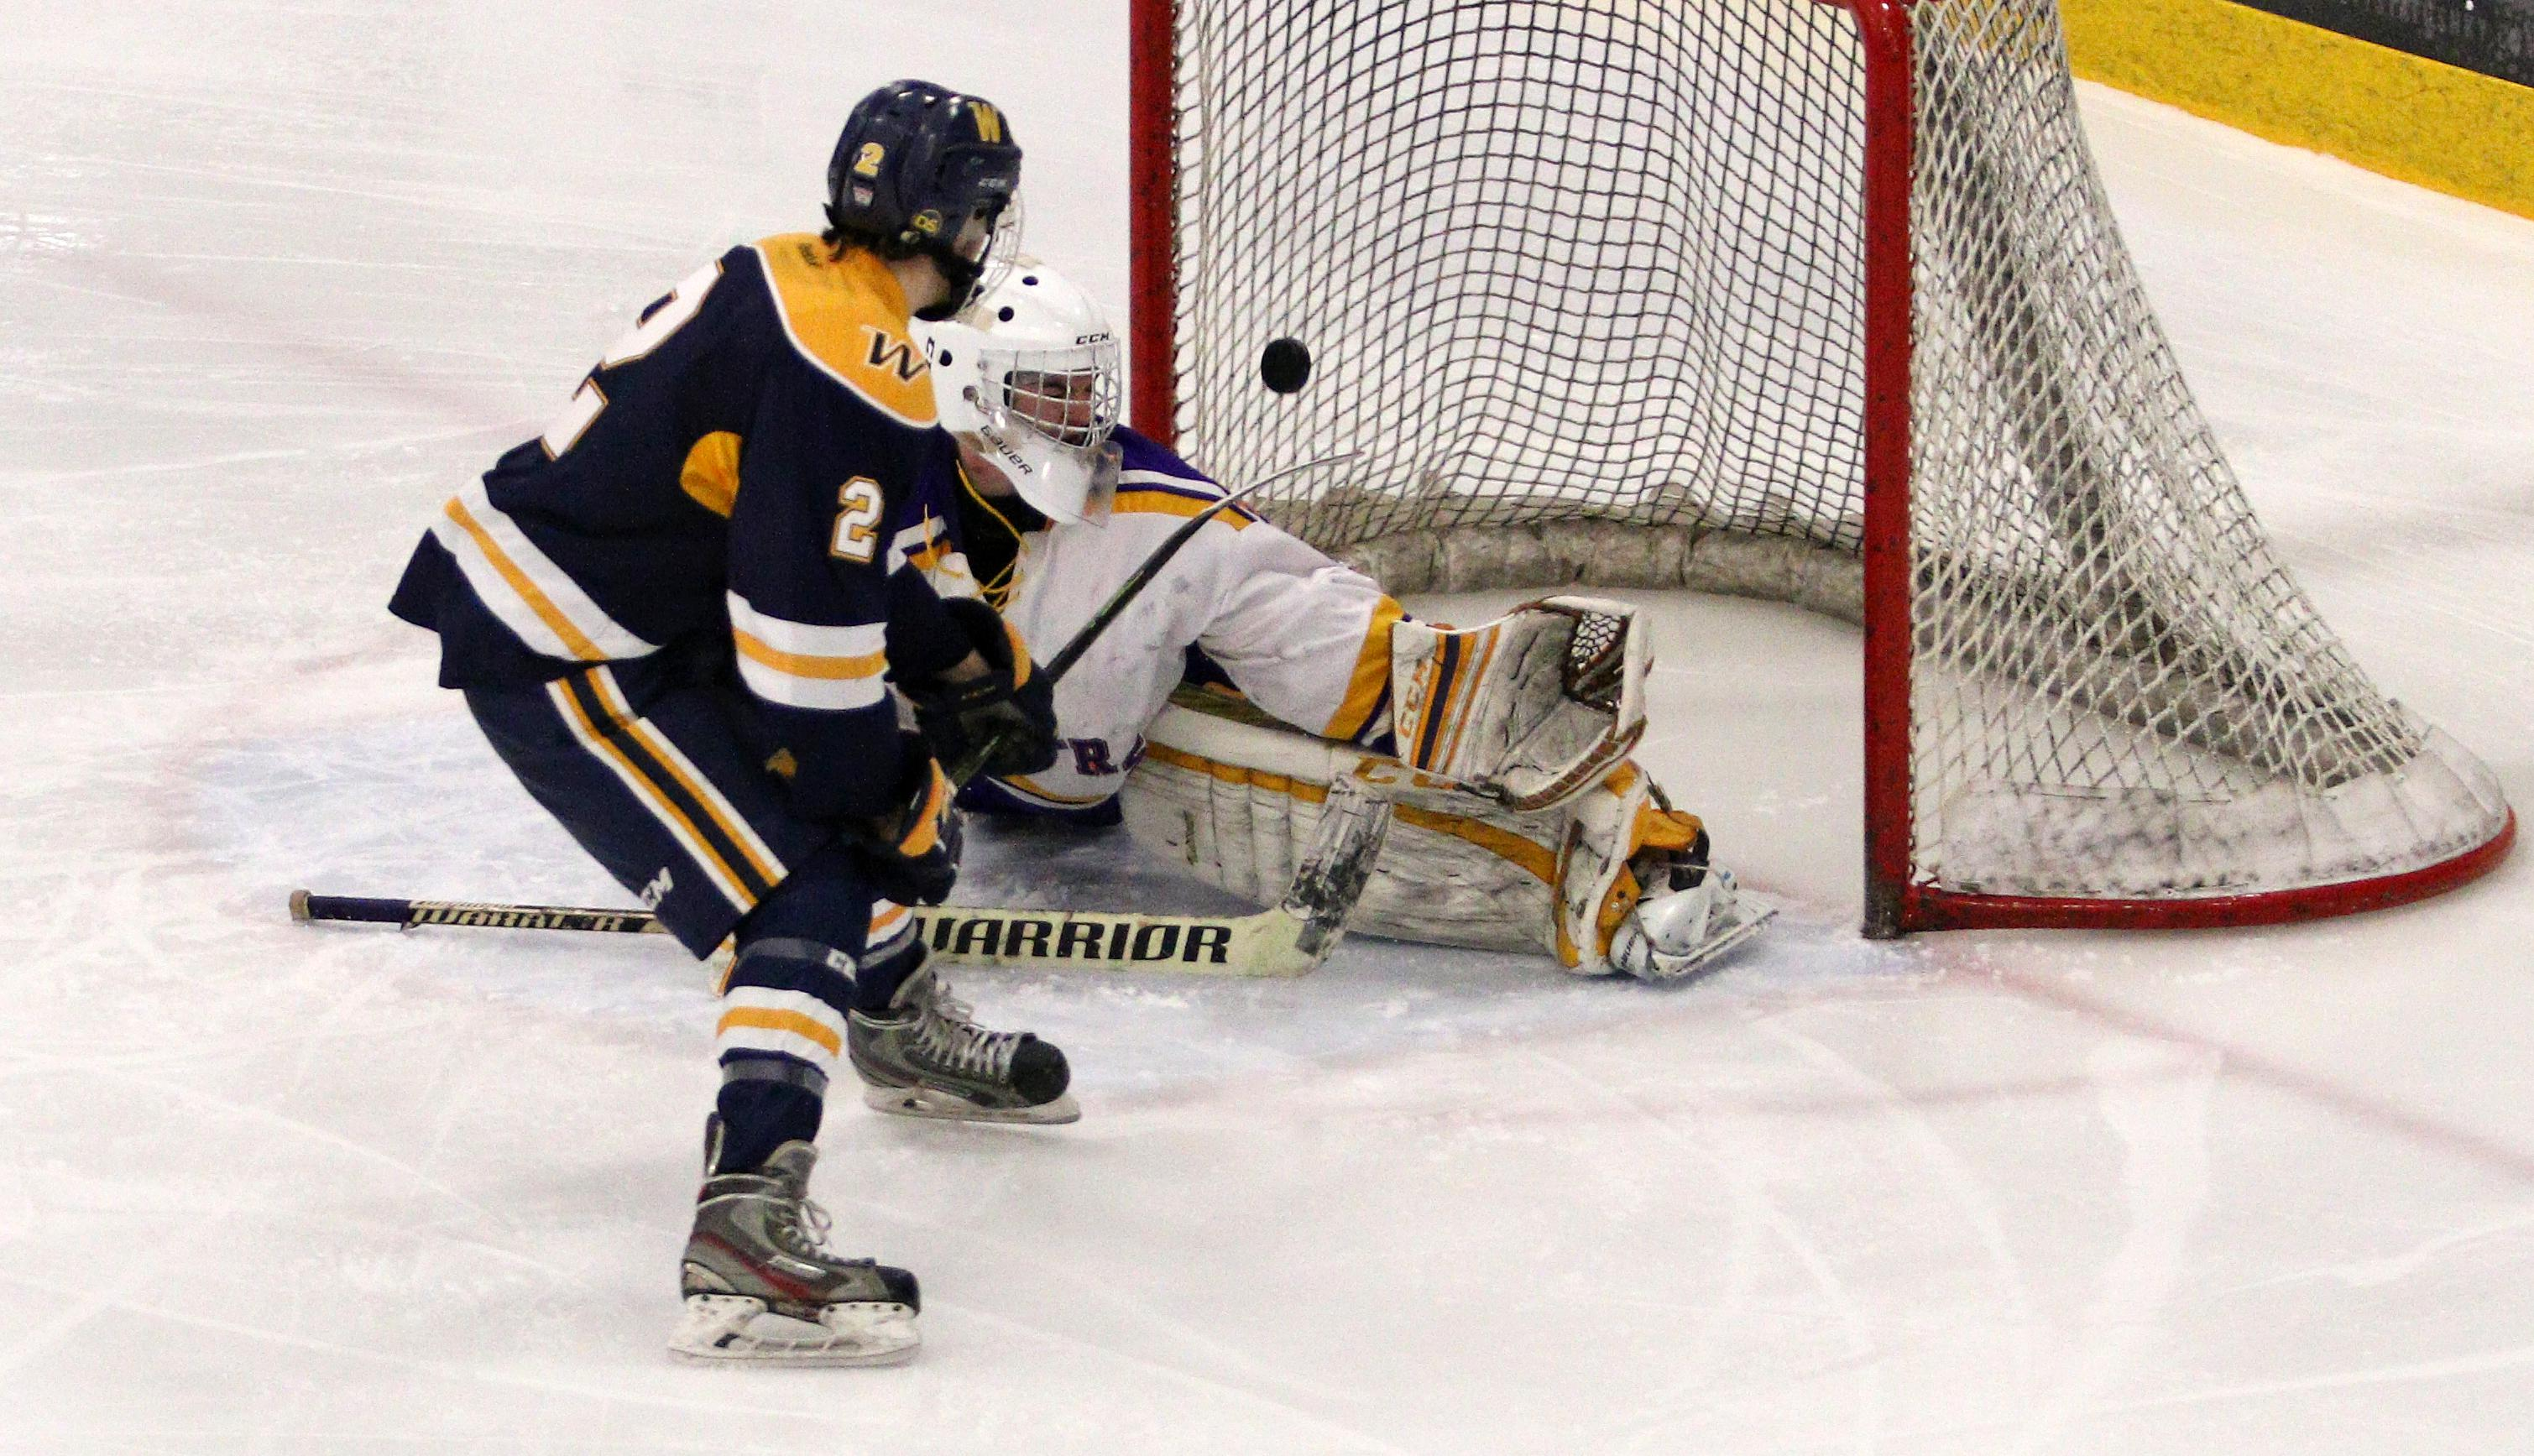 Andrew Urban scores off his backhand to give Wayzata a 2-0 lead early in the third period.  The Trojans would add a pair of empty net goals later in the period to defeat the Raiders 4-0.  Photo by Cheryl Myers, SportsEngine